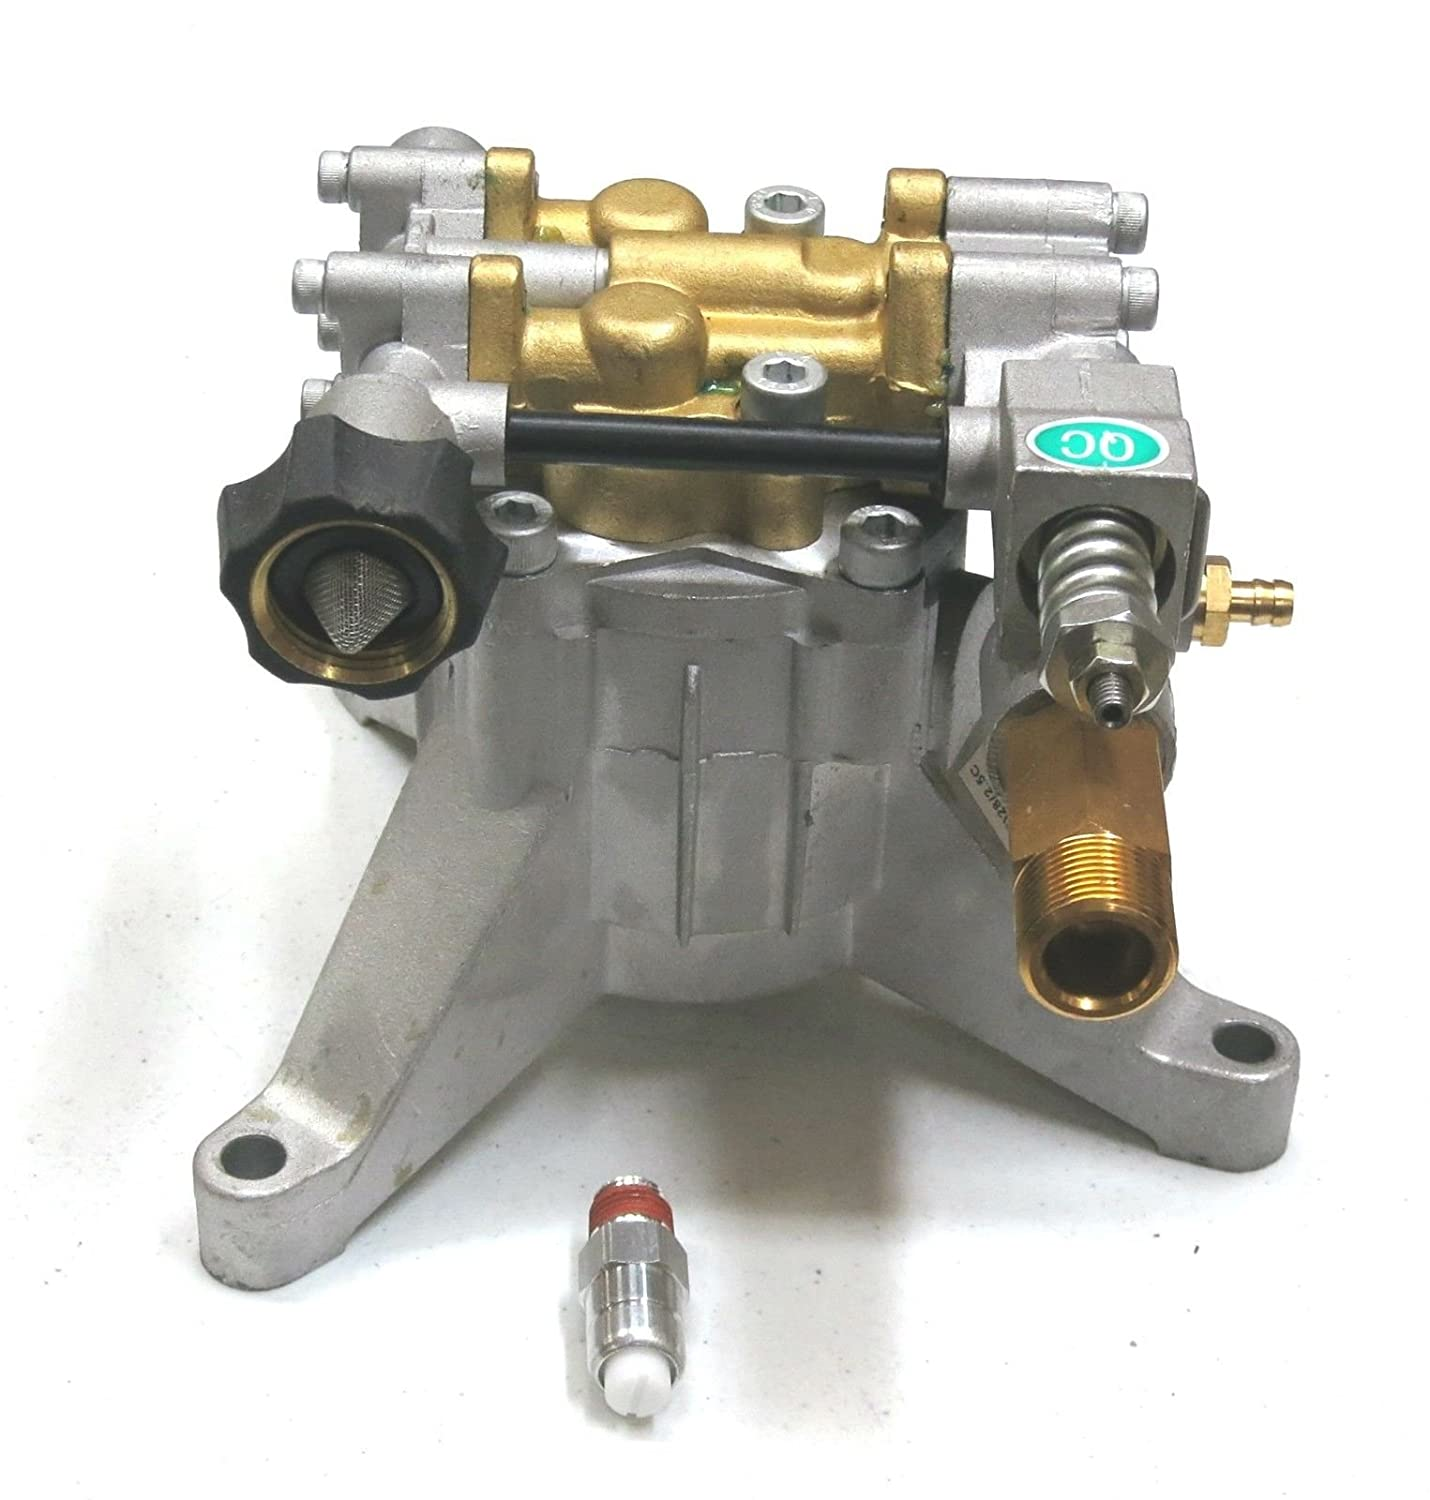 New 3100 PSI Upgraded POWER PRESSURE WASHER WATER PUMP Husky HU80709 HU80709A by The ROP Shop